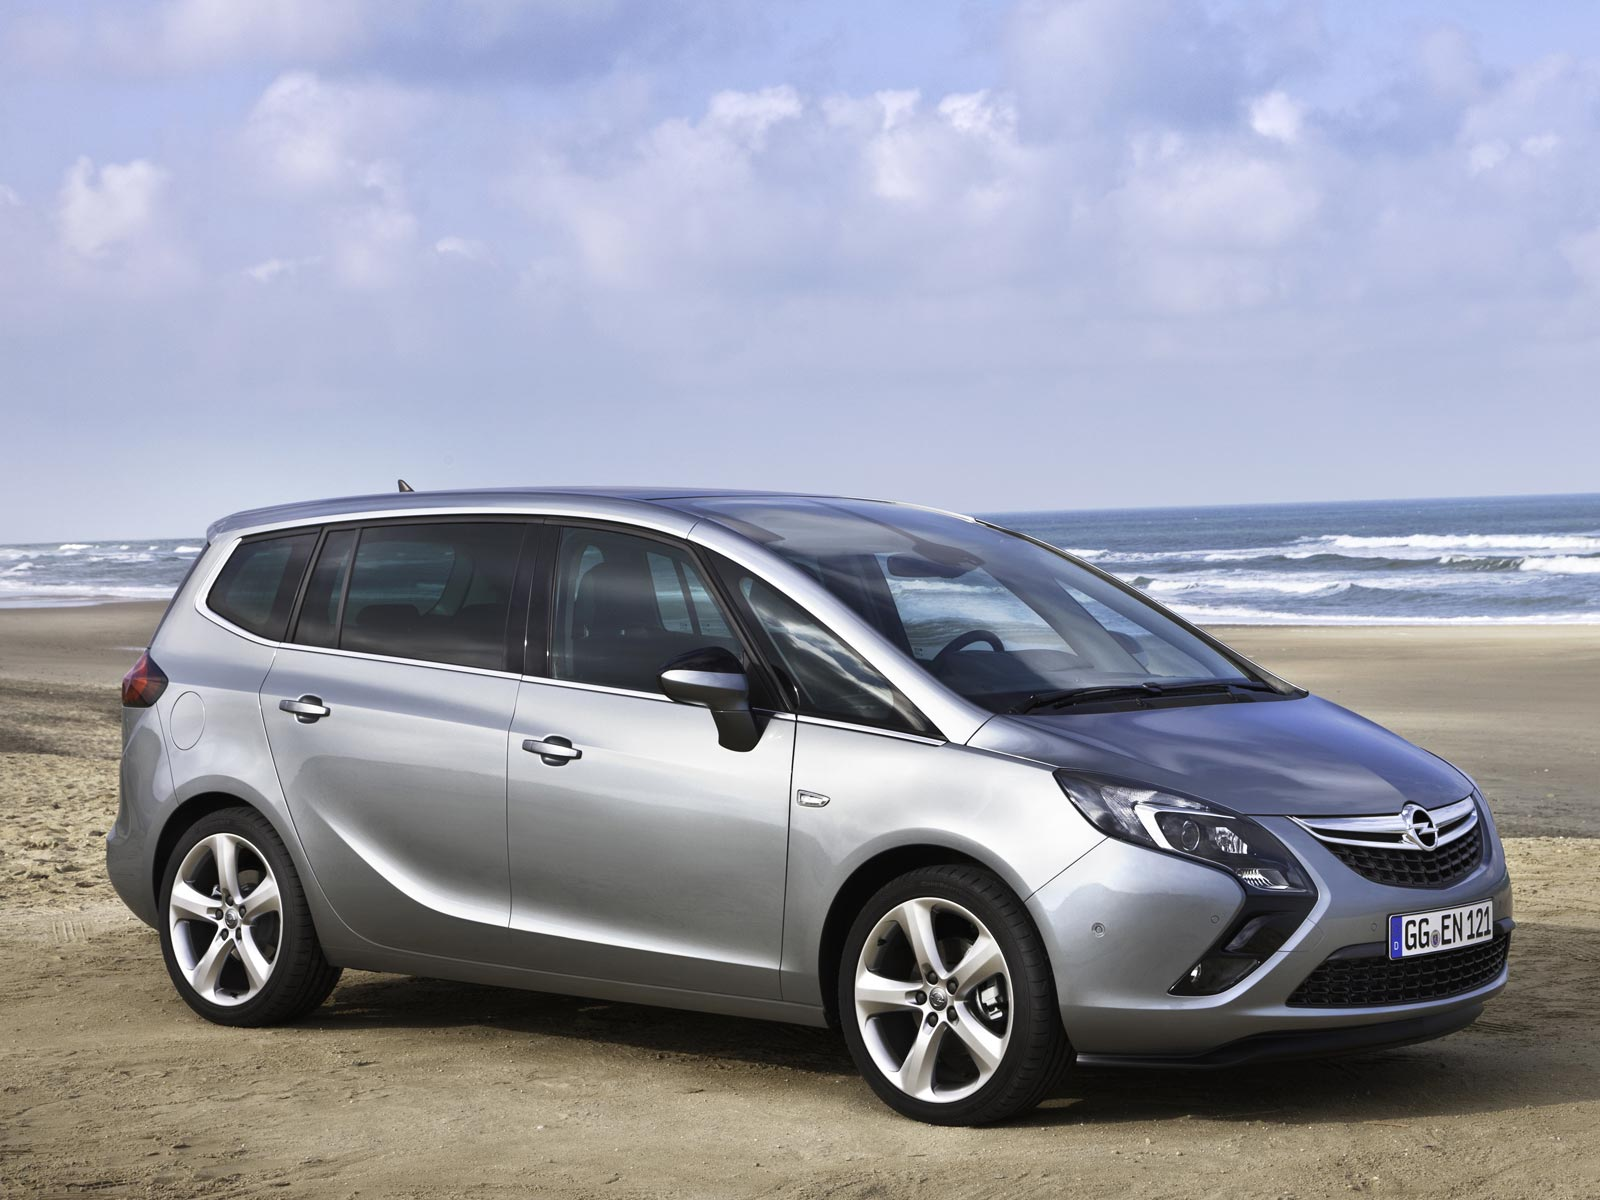 2019 Opel Zafira photo - 2